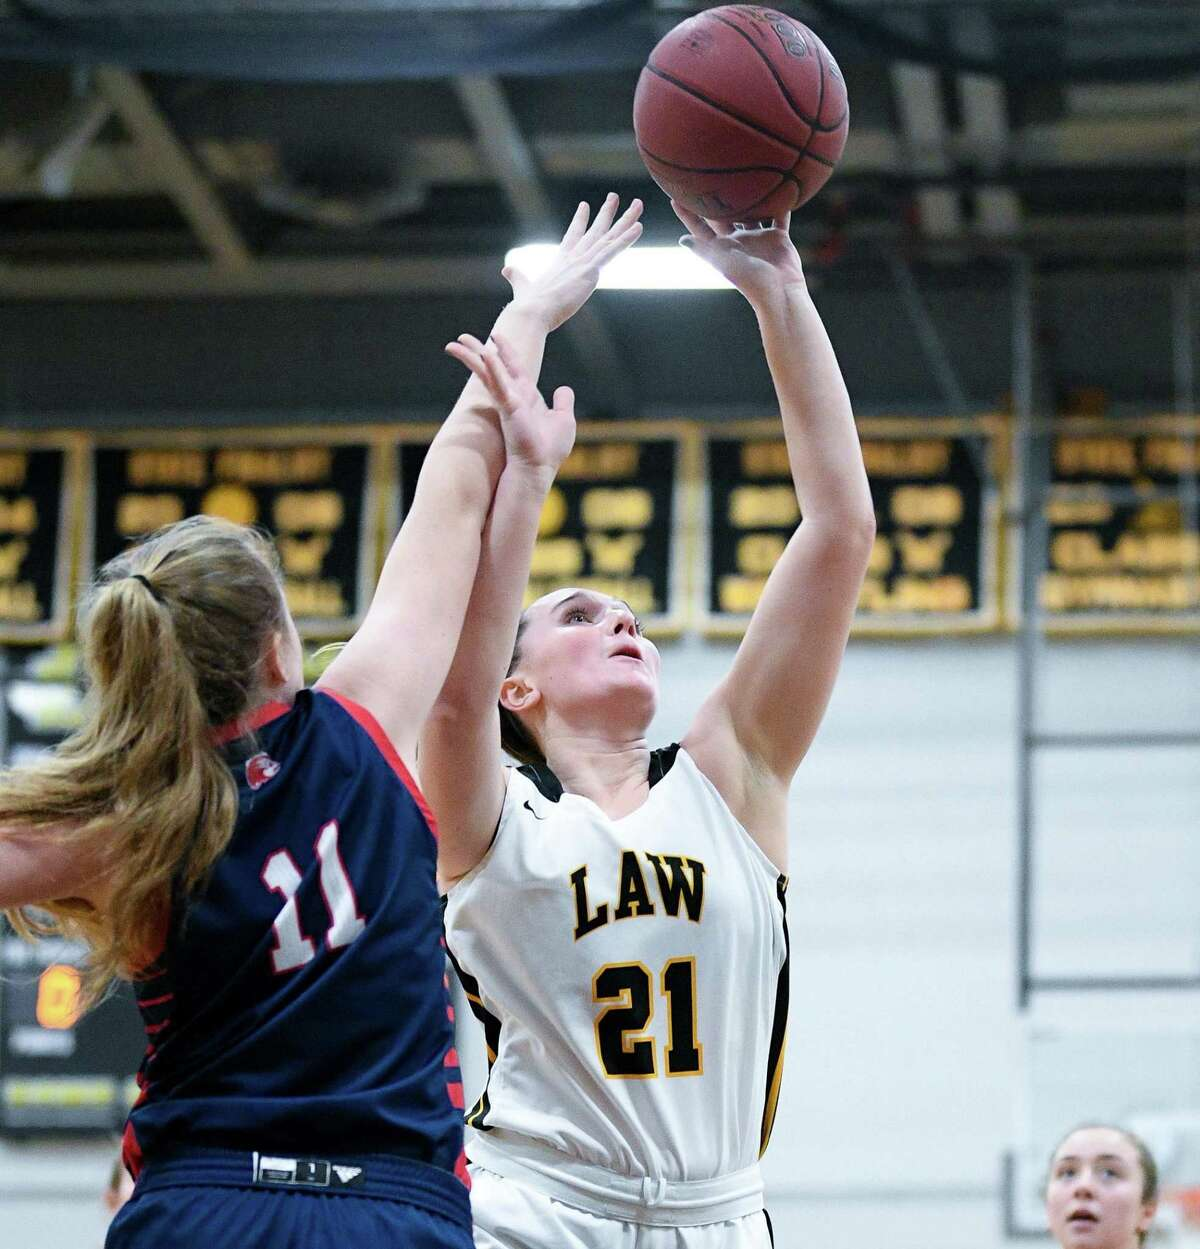 Jill Hall had a double-double with 10 points and 10 rebounds when Law defeated Foran.